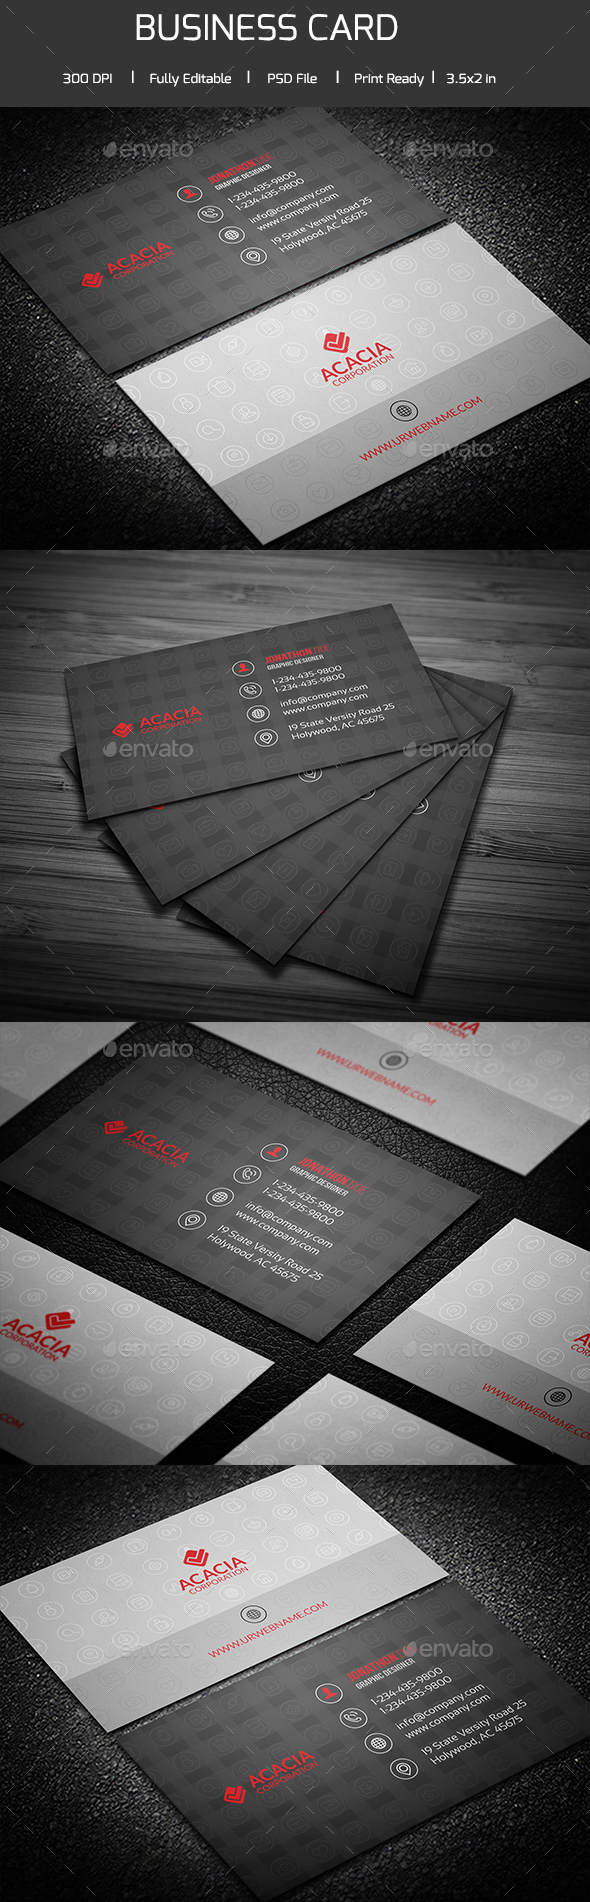 SocialIcons Business Card - Corporate Business Cards